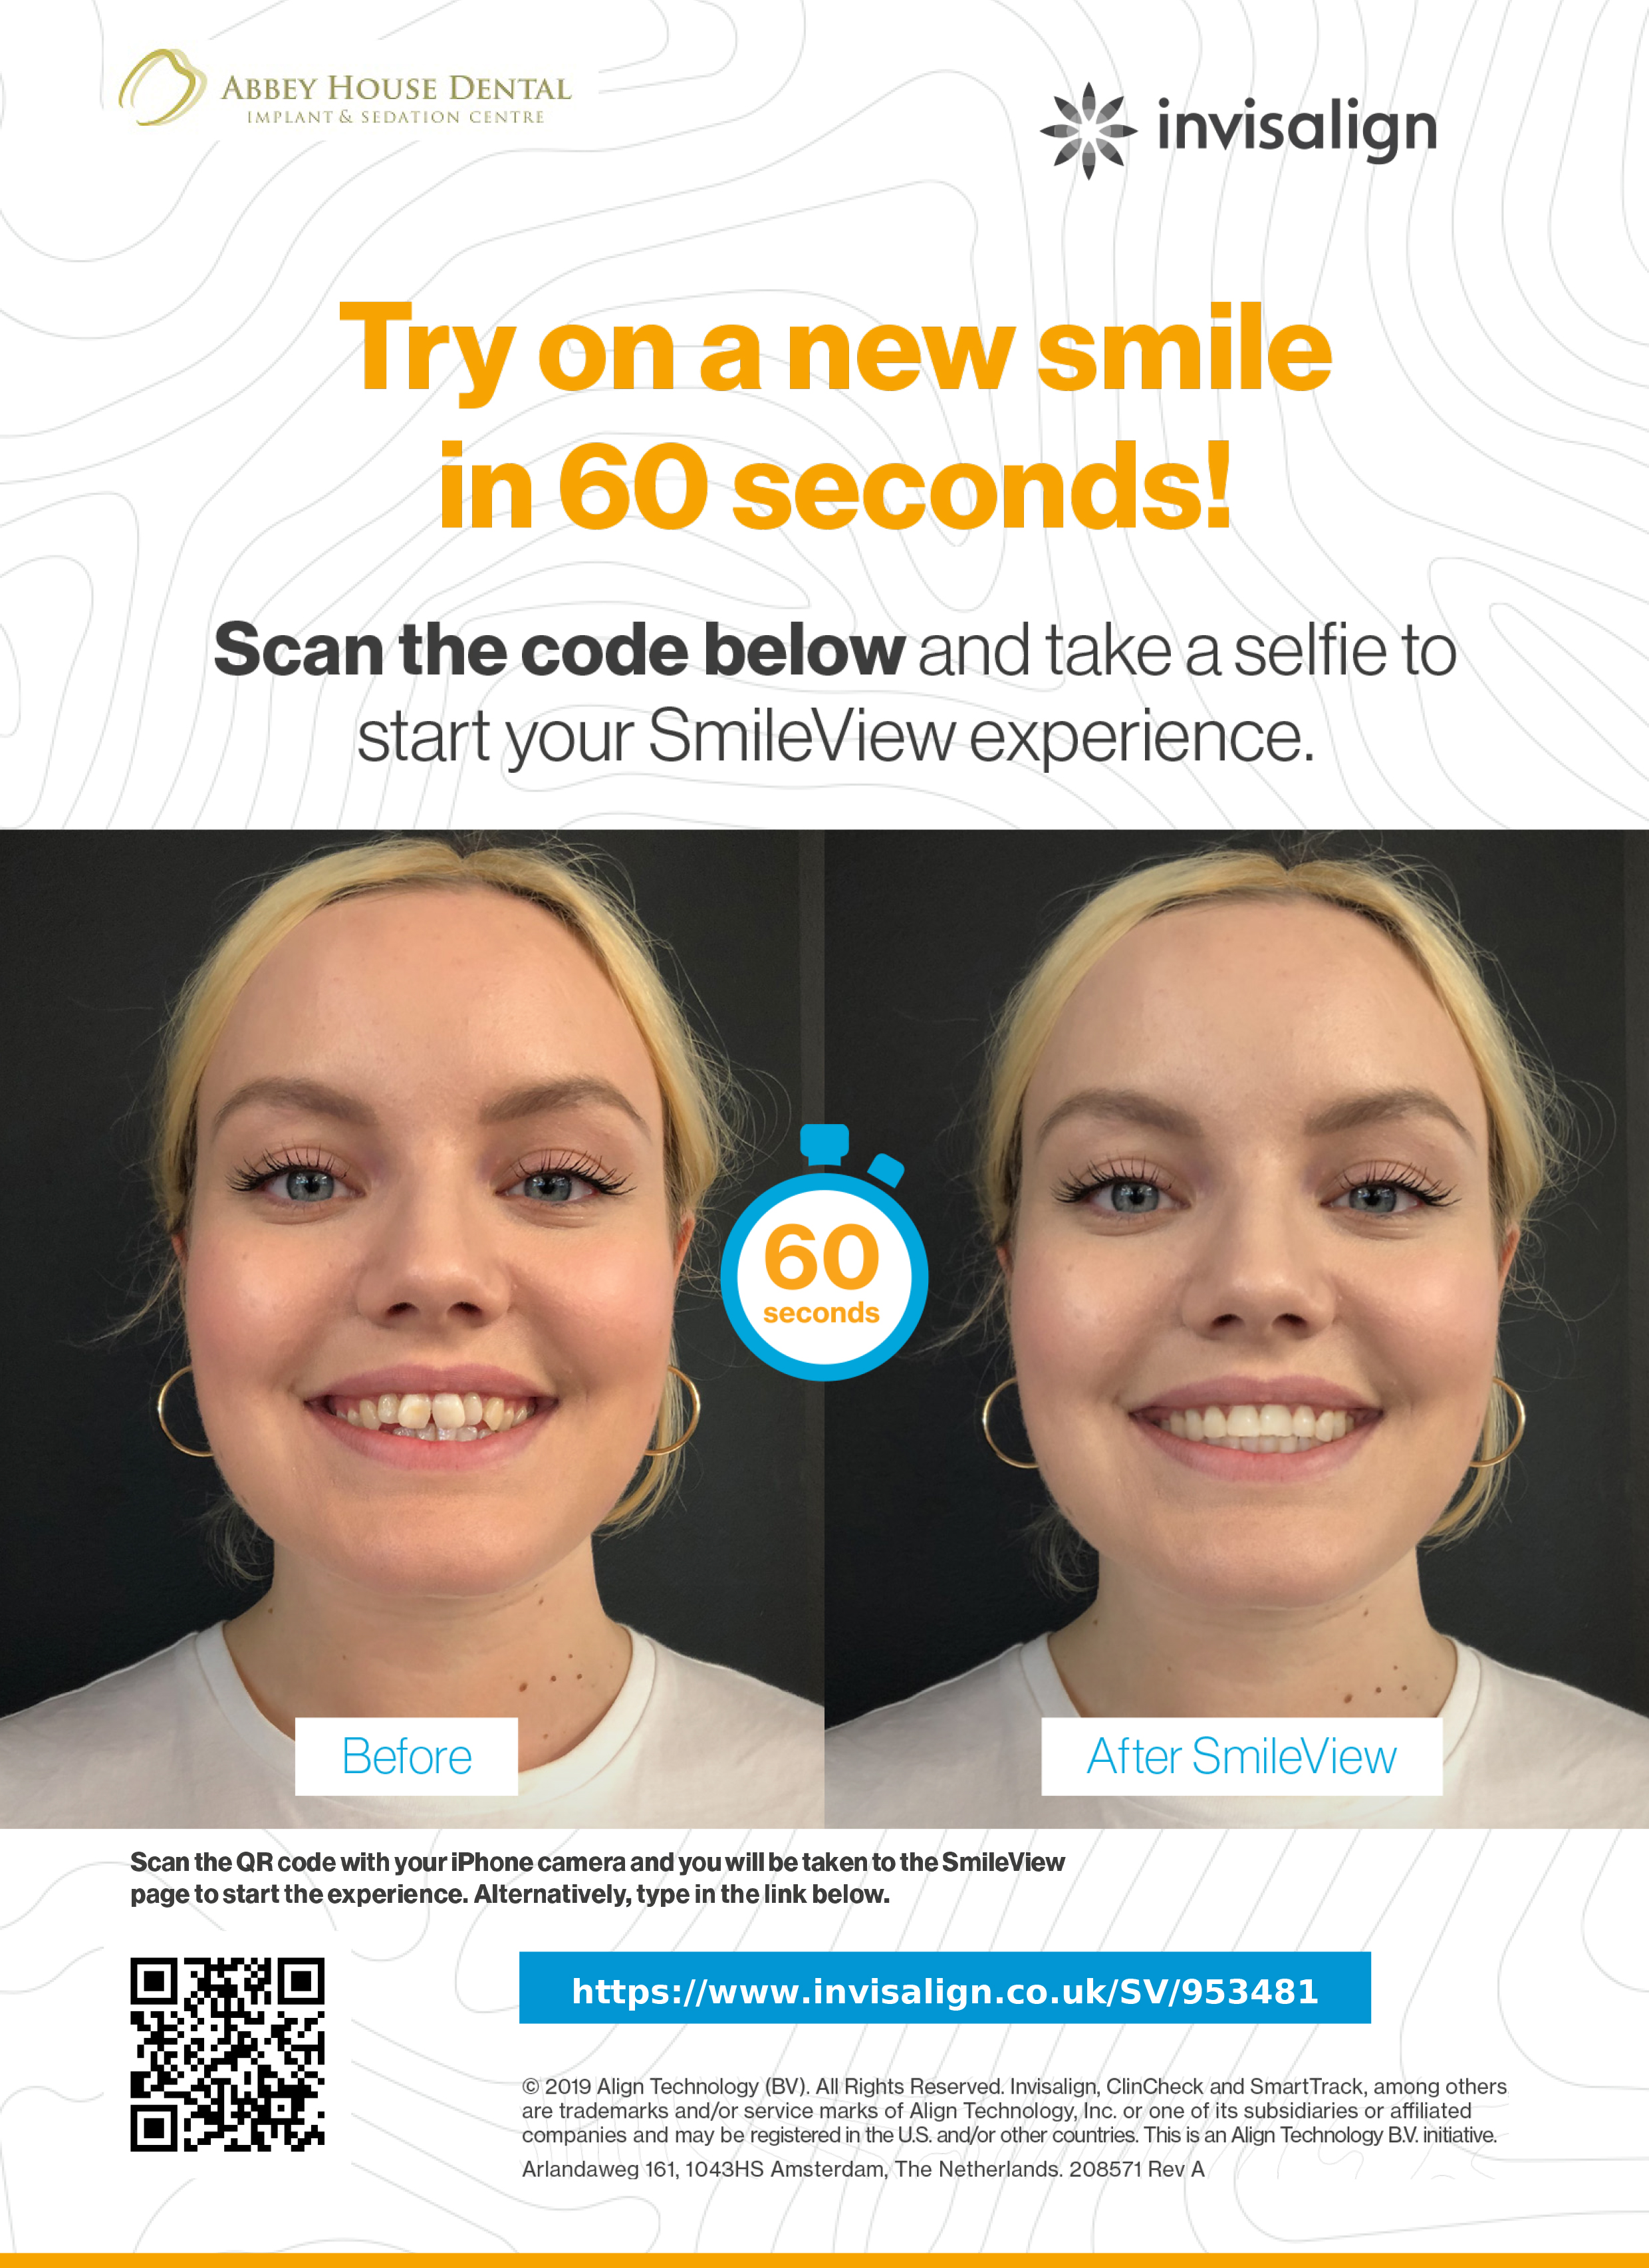 Abbey House Dental - Invisalign Smile View